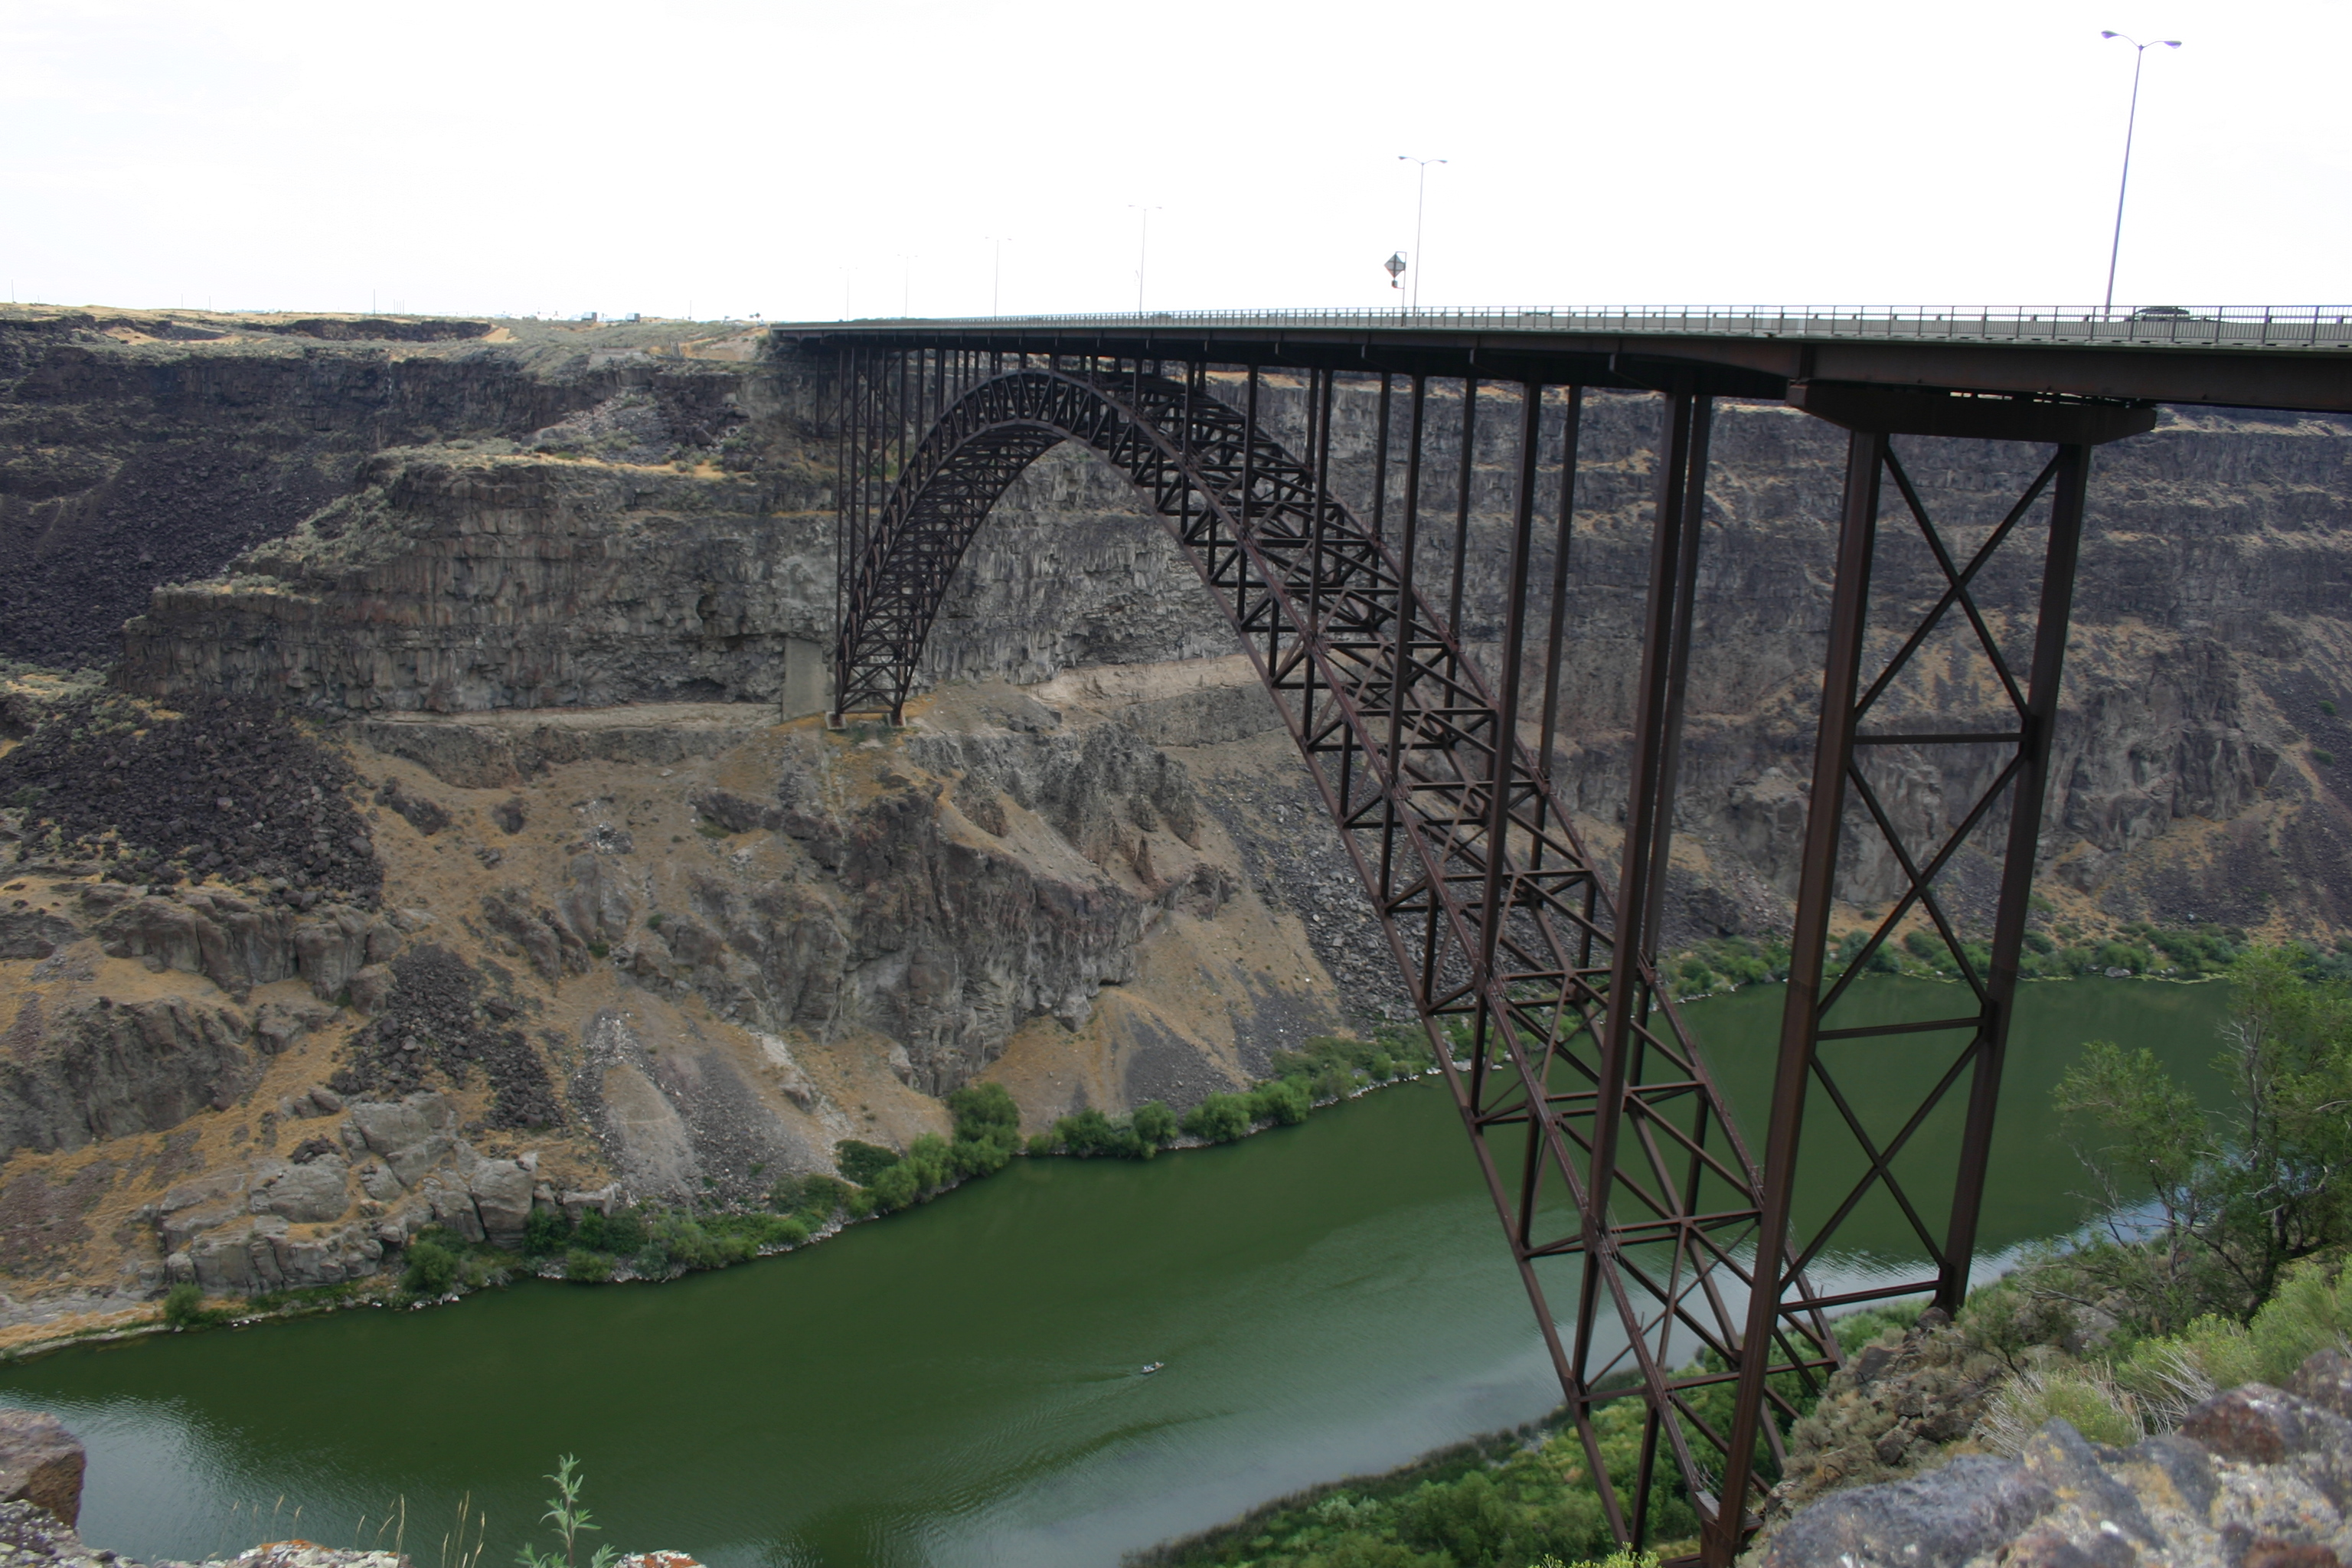 Perrine Bridge over the Snake River Canyon in Twin Falls, Idaho.